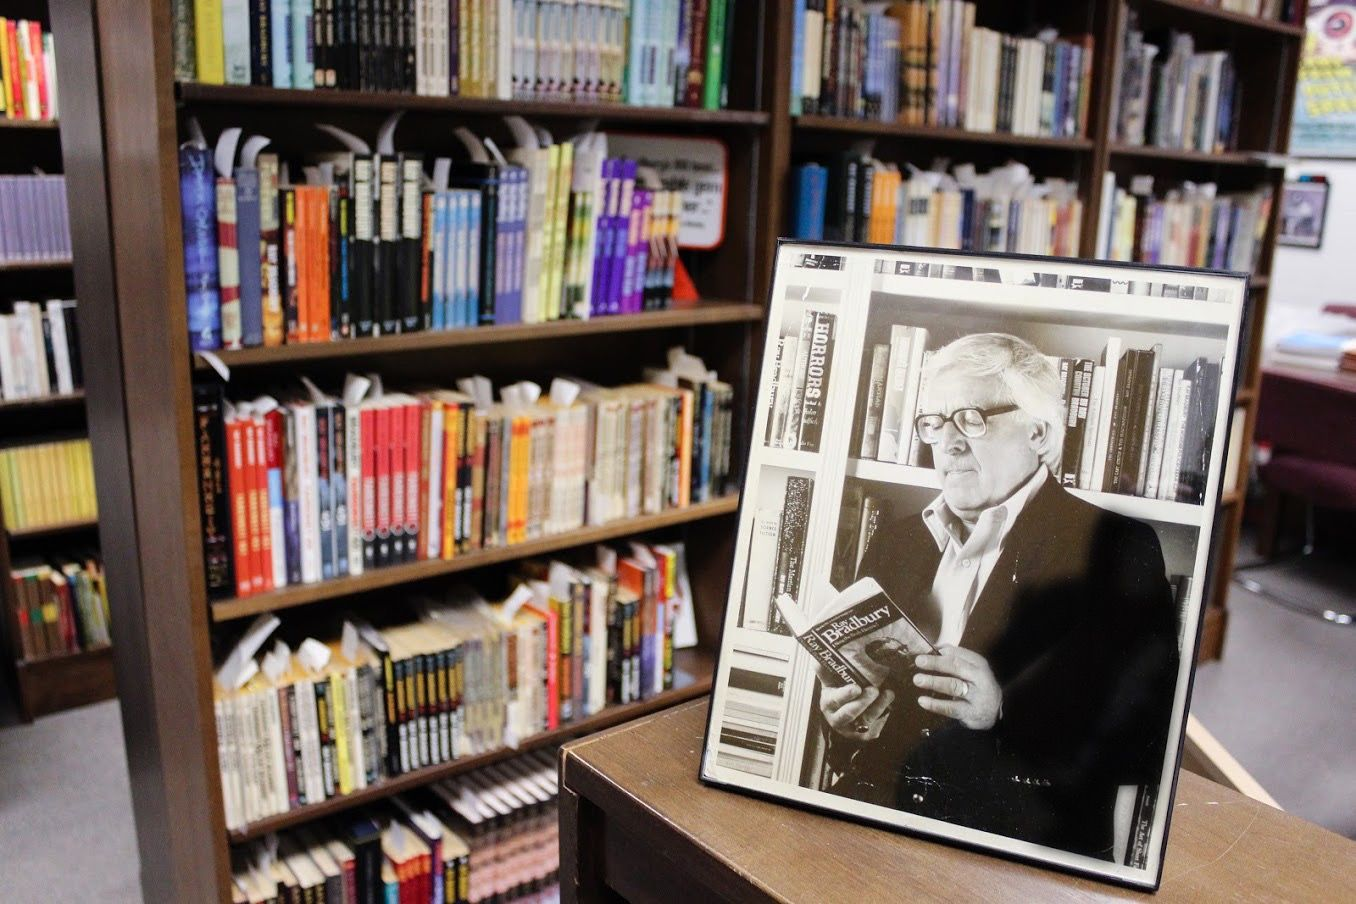 Framed photo of Ray Bradbury in front of bookshelves